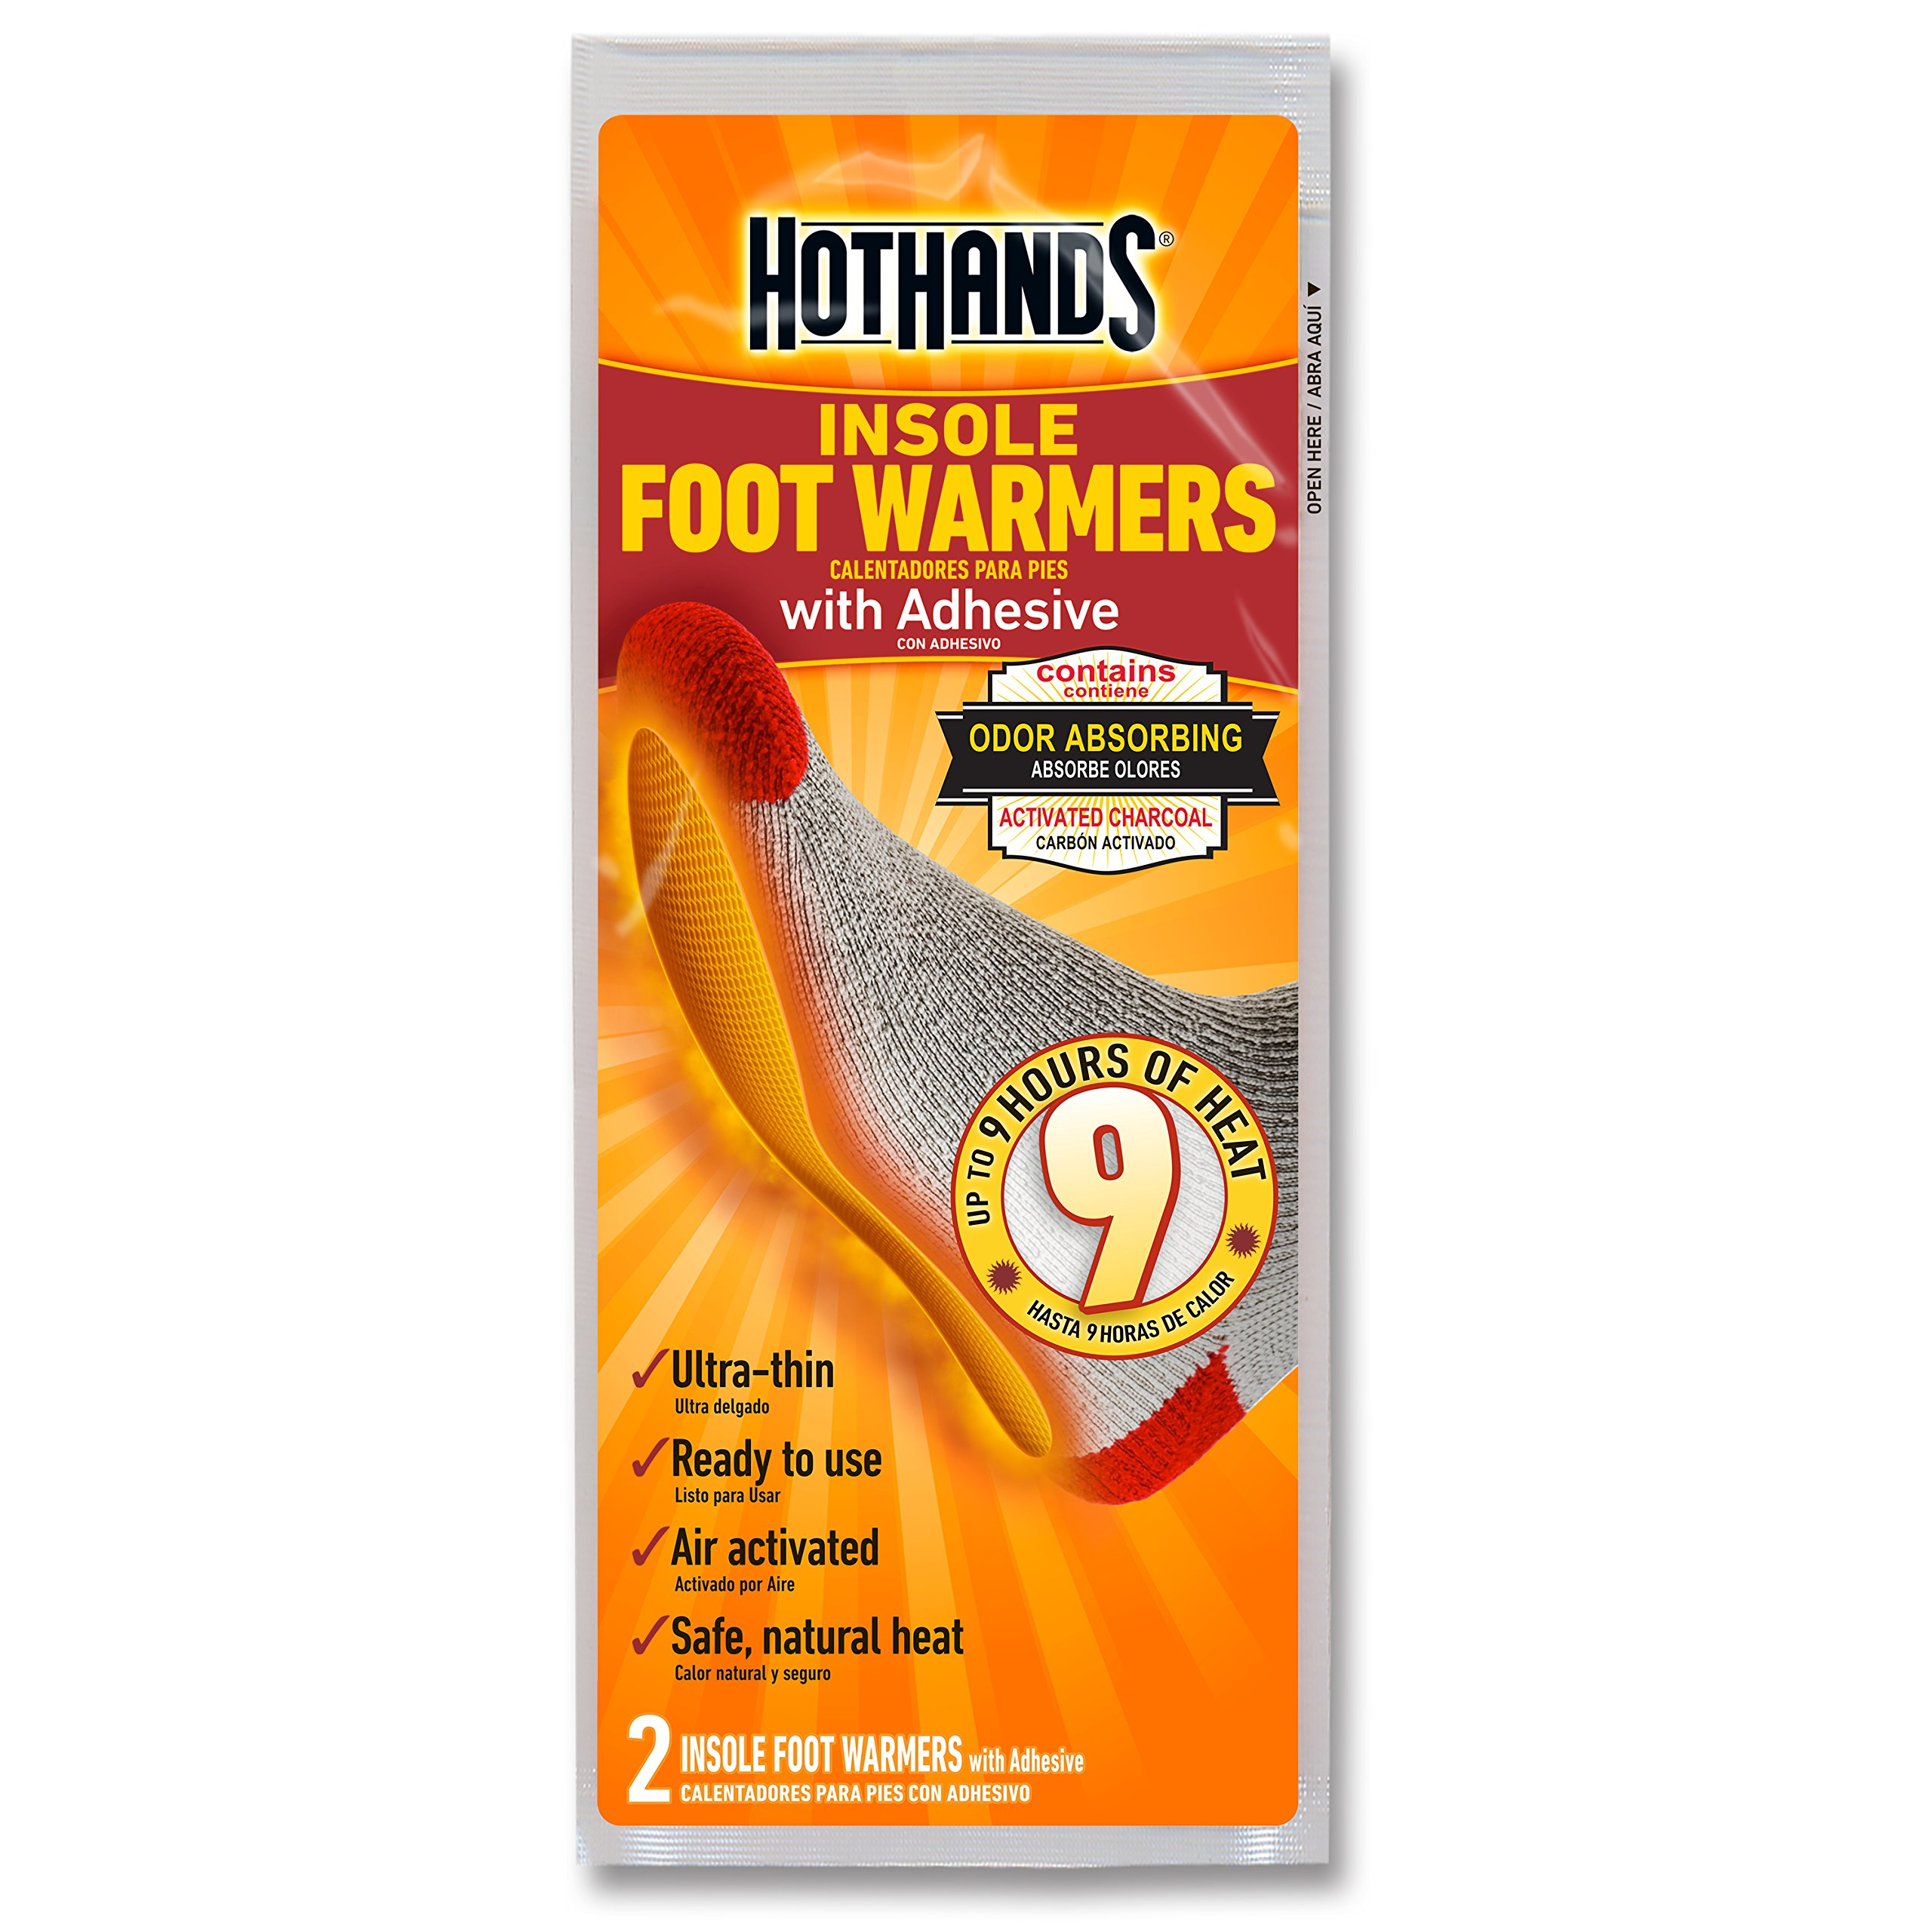 HotHands Insole Foot Warmers - Long Lasting Safe Natural Odorless Air Activated Warmers - Up to 9 Hours of Heat - 16 Pair by HotHands (Image #2)